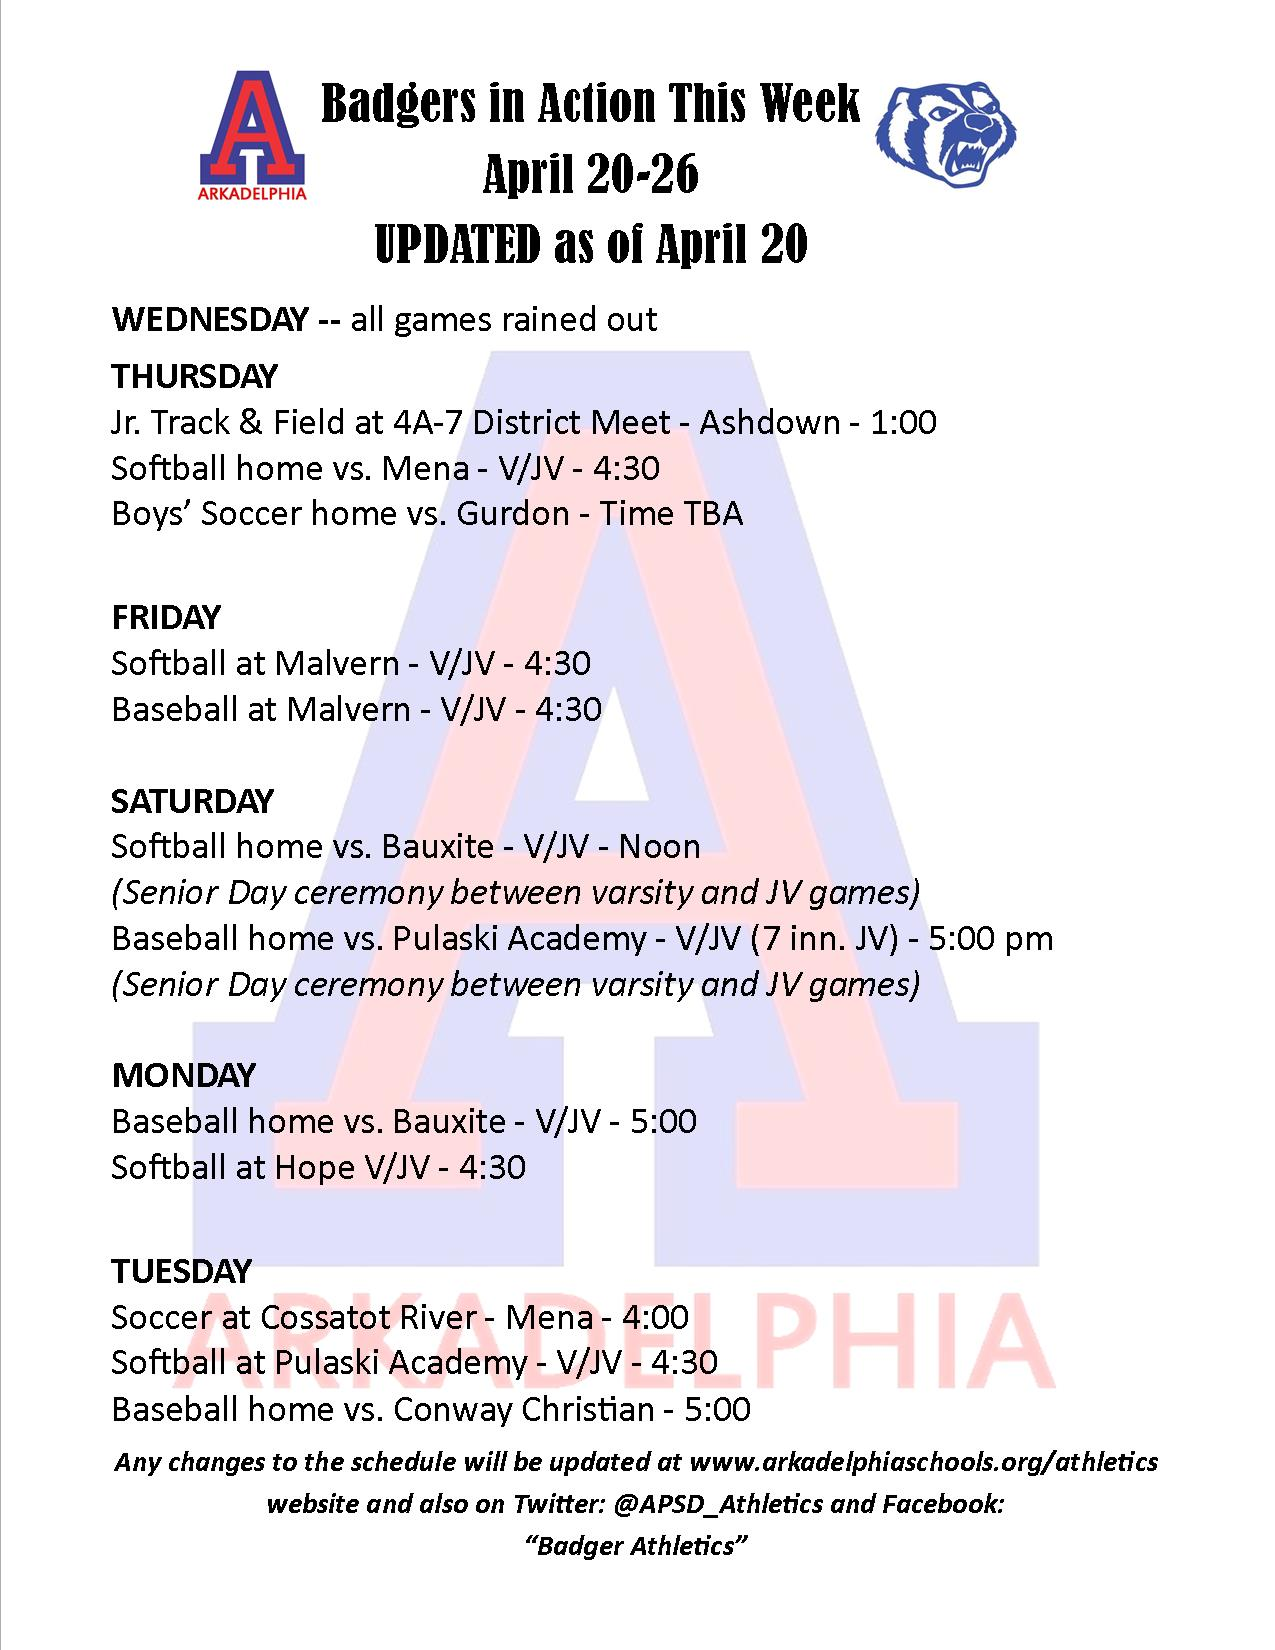 UPDATED This Week in APSD Athletics